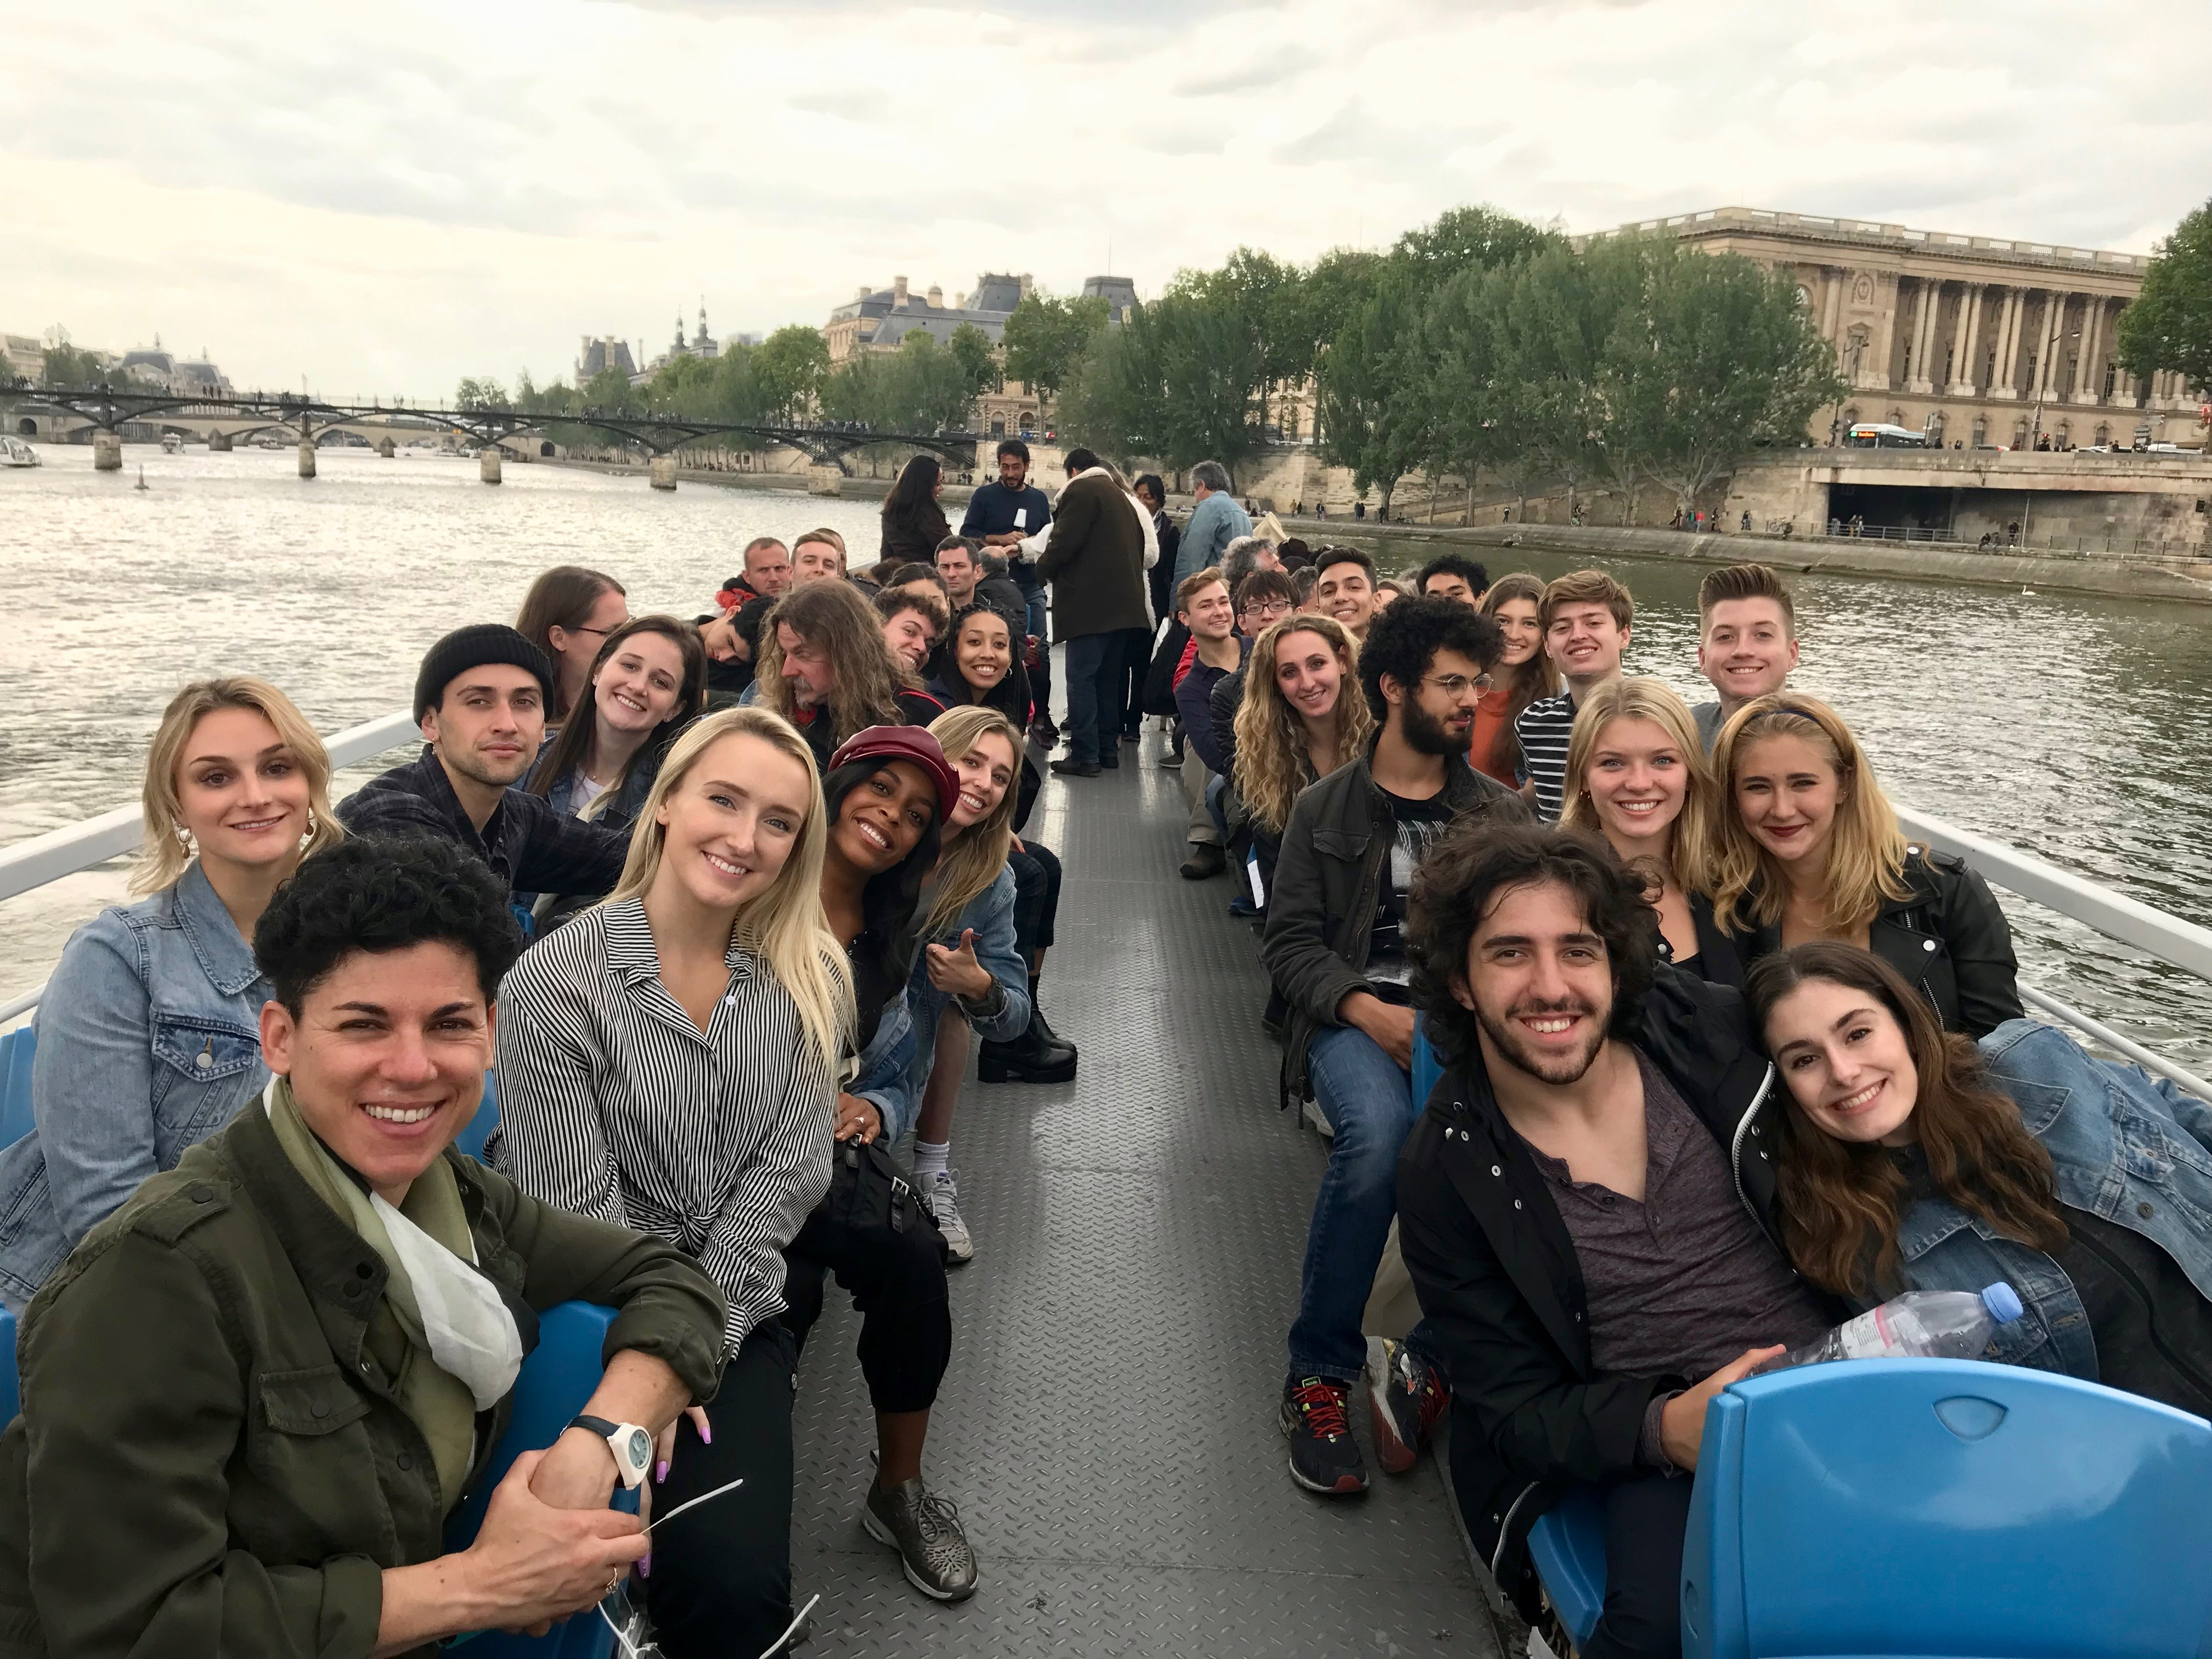 people smiling while sitting on top of tour boat